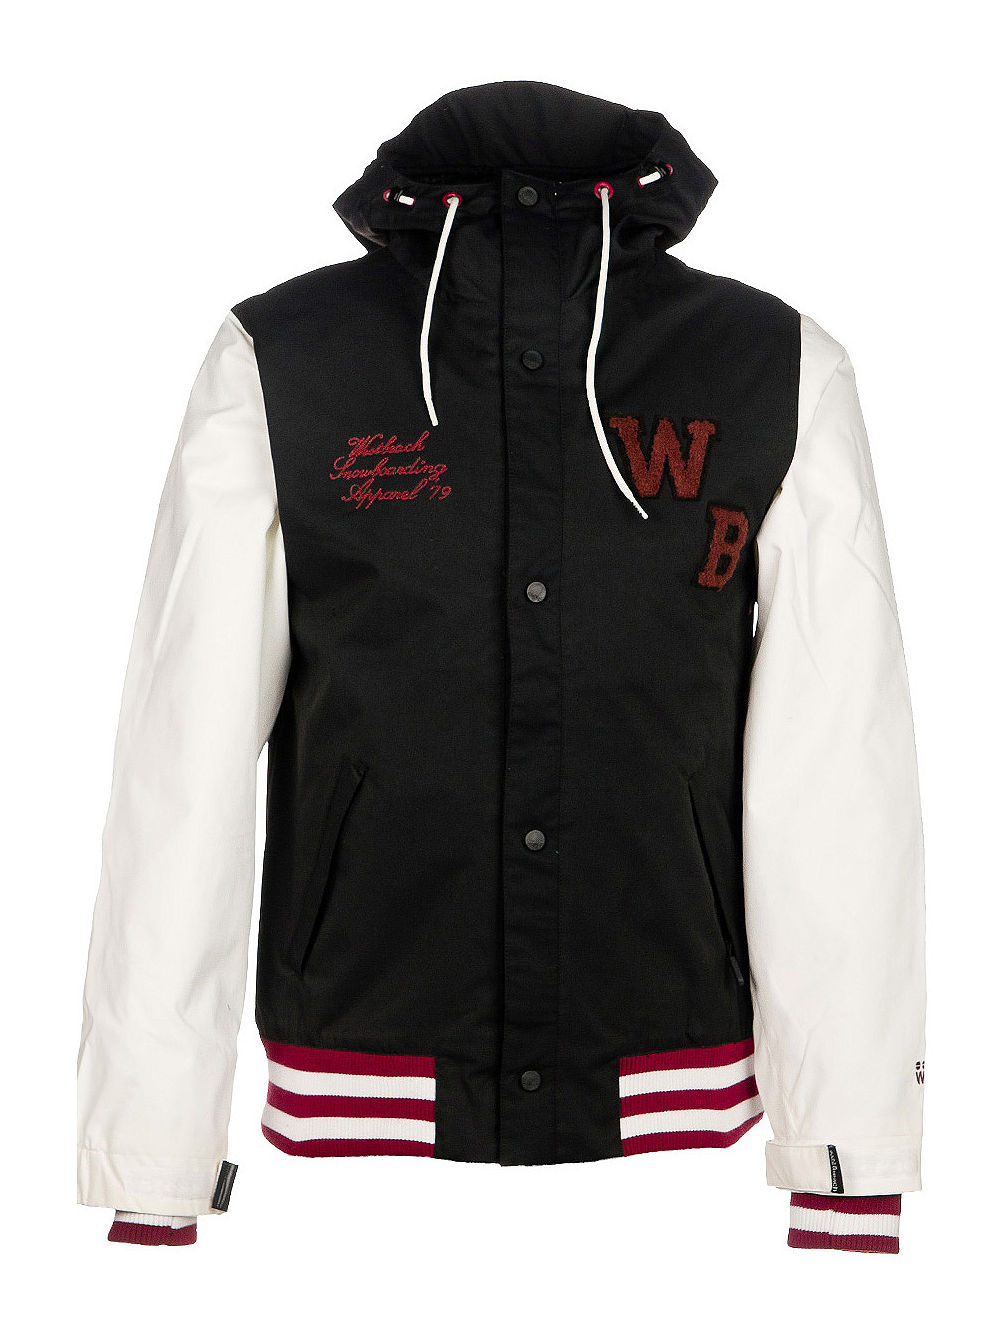 Degrassi Jacket Women